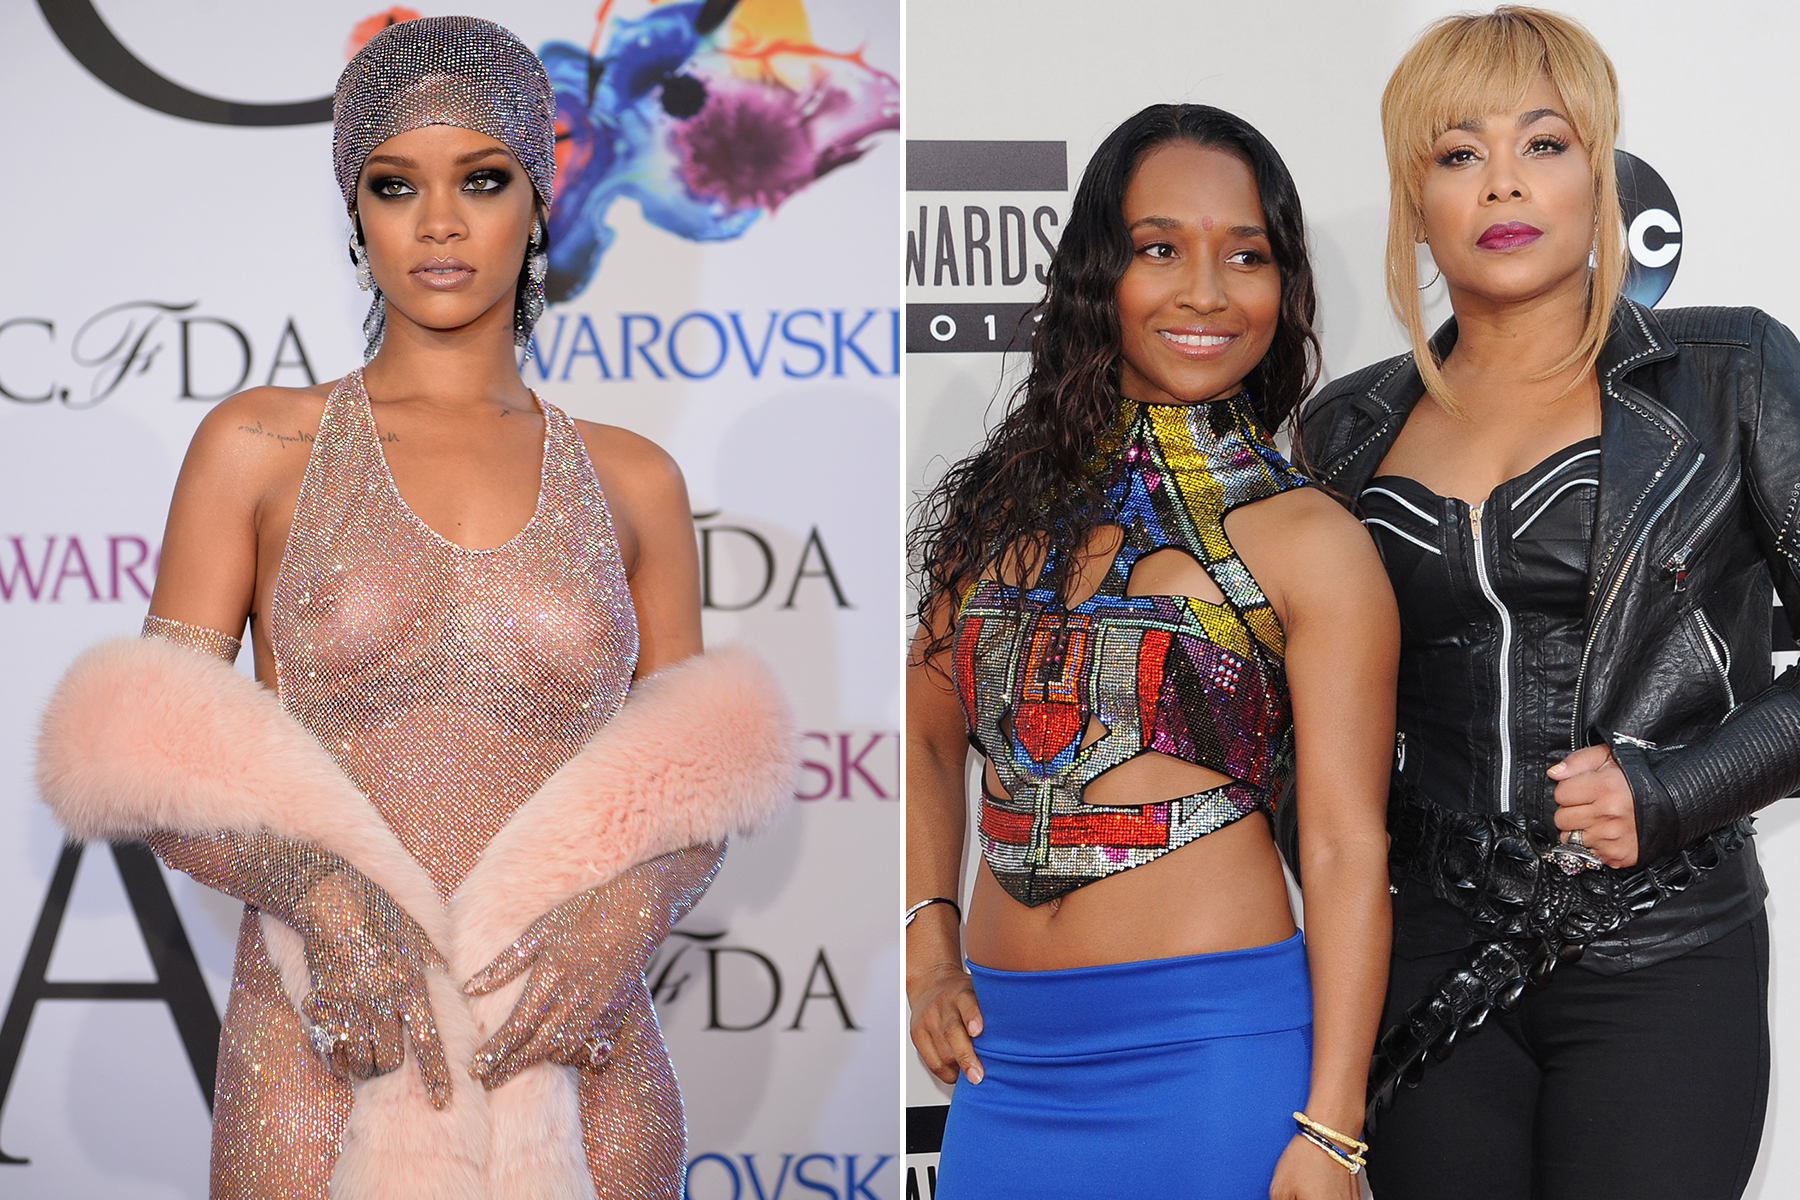 Rihanna Posts Topless Photo of TLC After They Chastise Her Nudity